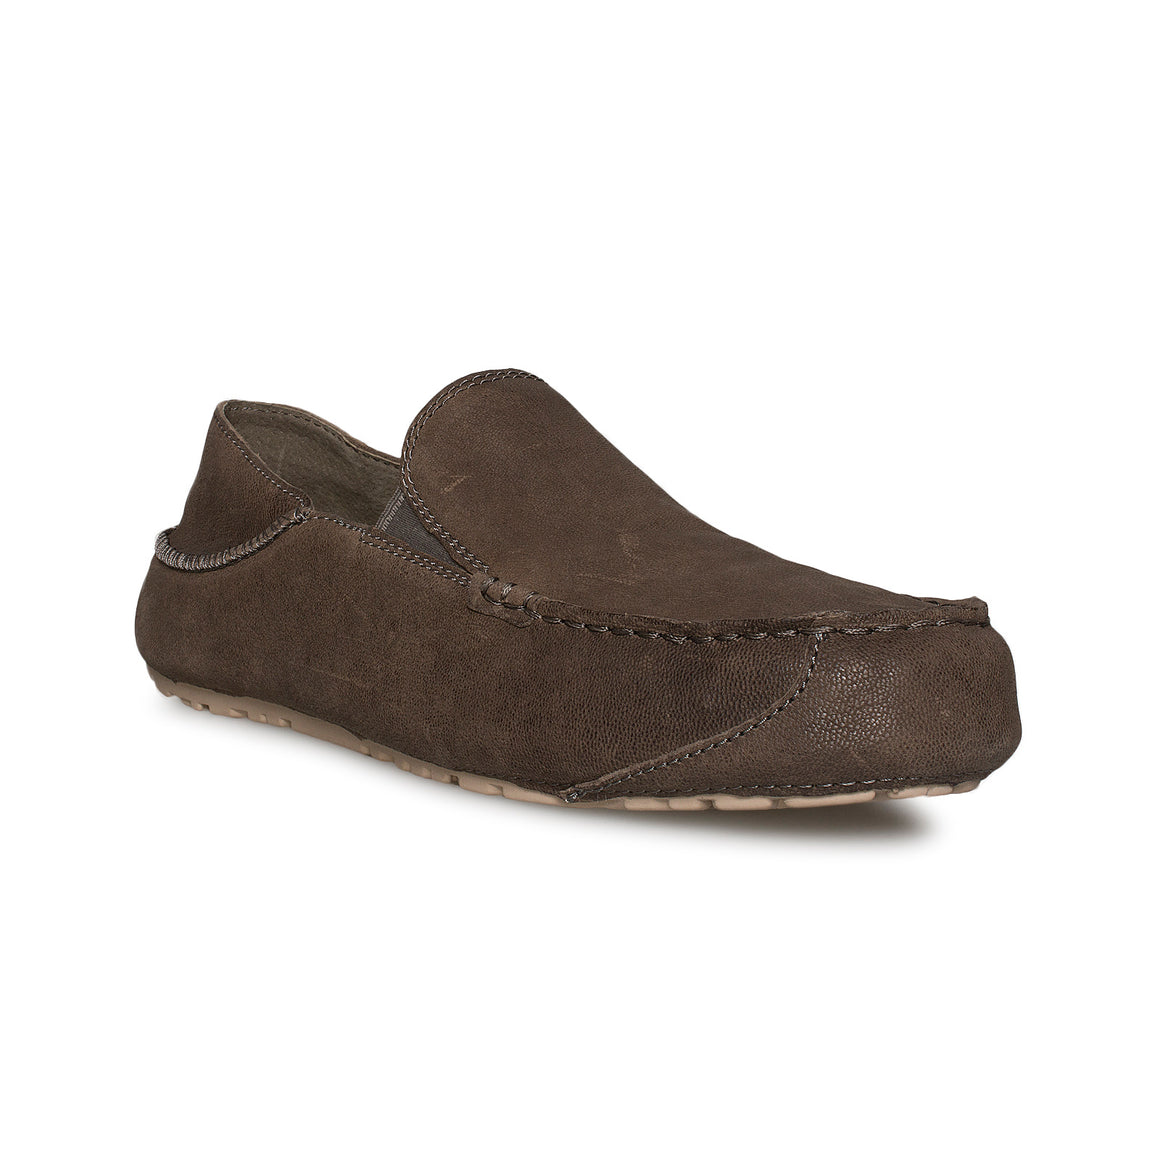 UGG Upshaw Mole Shoes - Men's